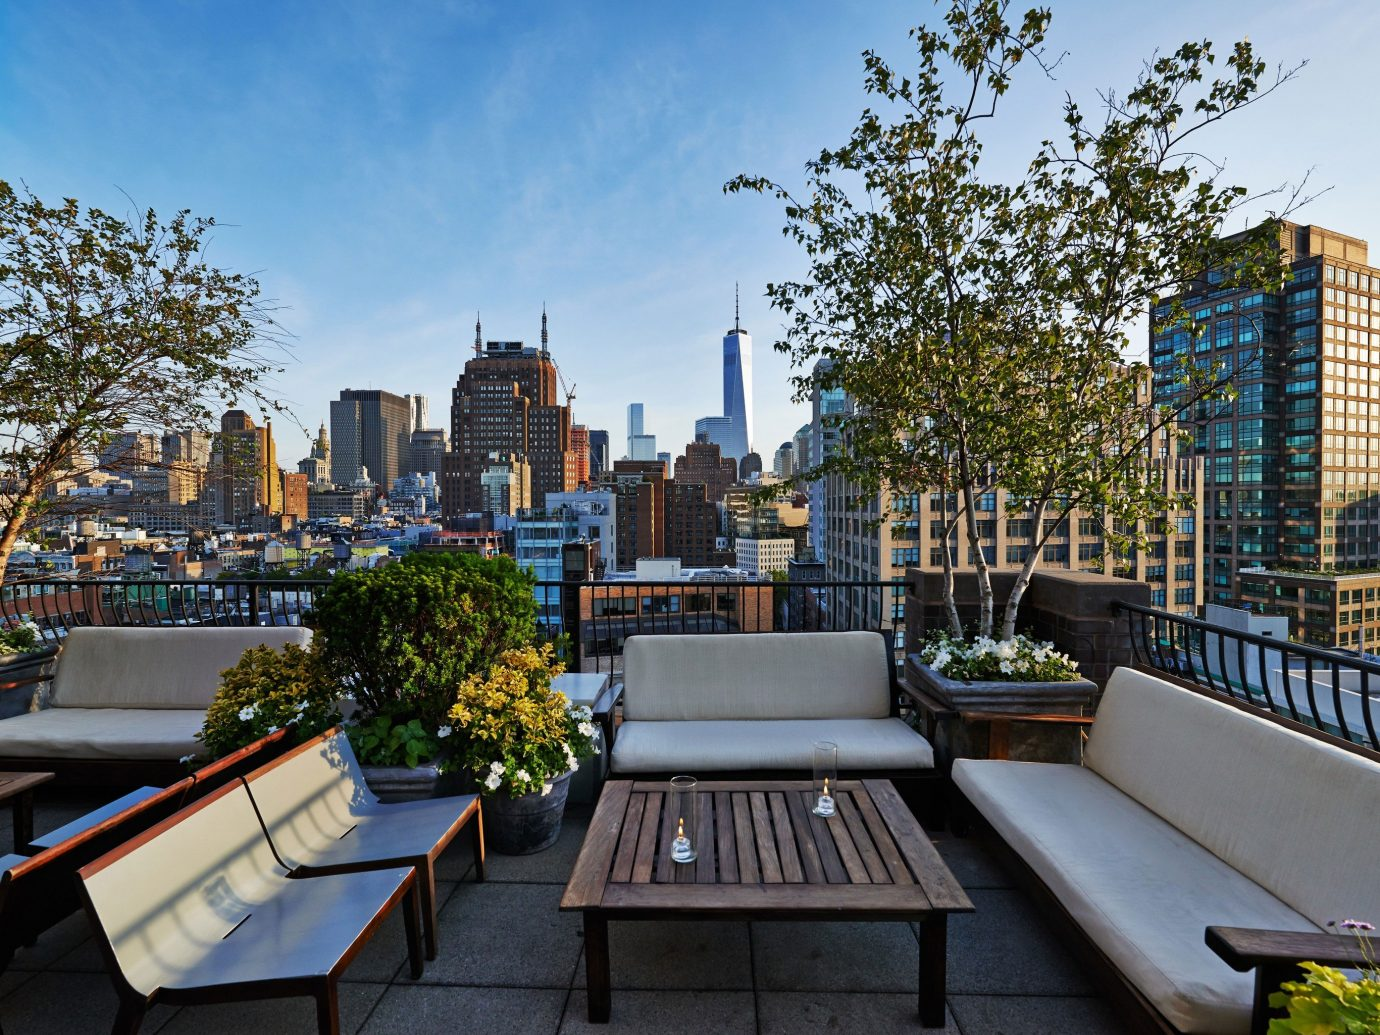 Hotels tree sky outdoor City neighbourhood condominium urban area landmark plaza human settlement Downtown Architecture residential area park estate vacation cityscape waterway skyline real estate town square home outdoor structure apartment